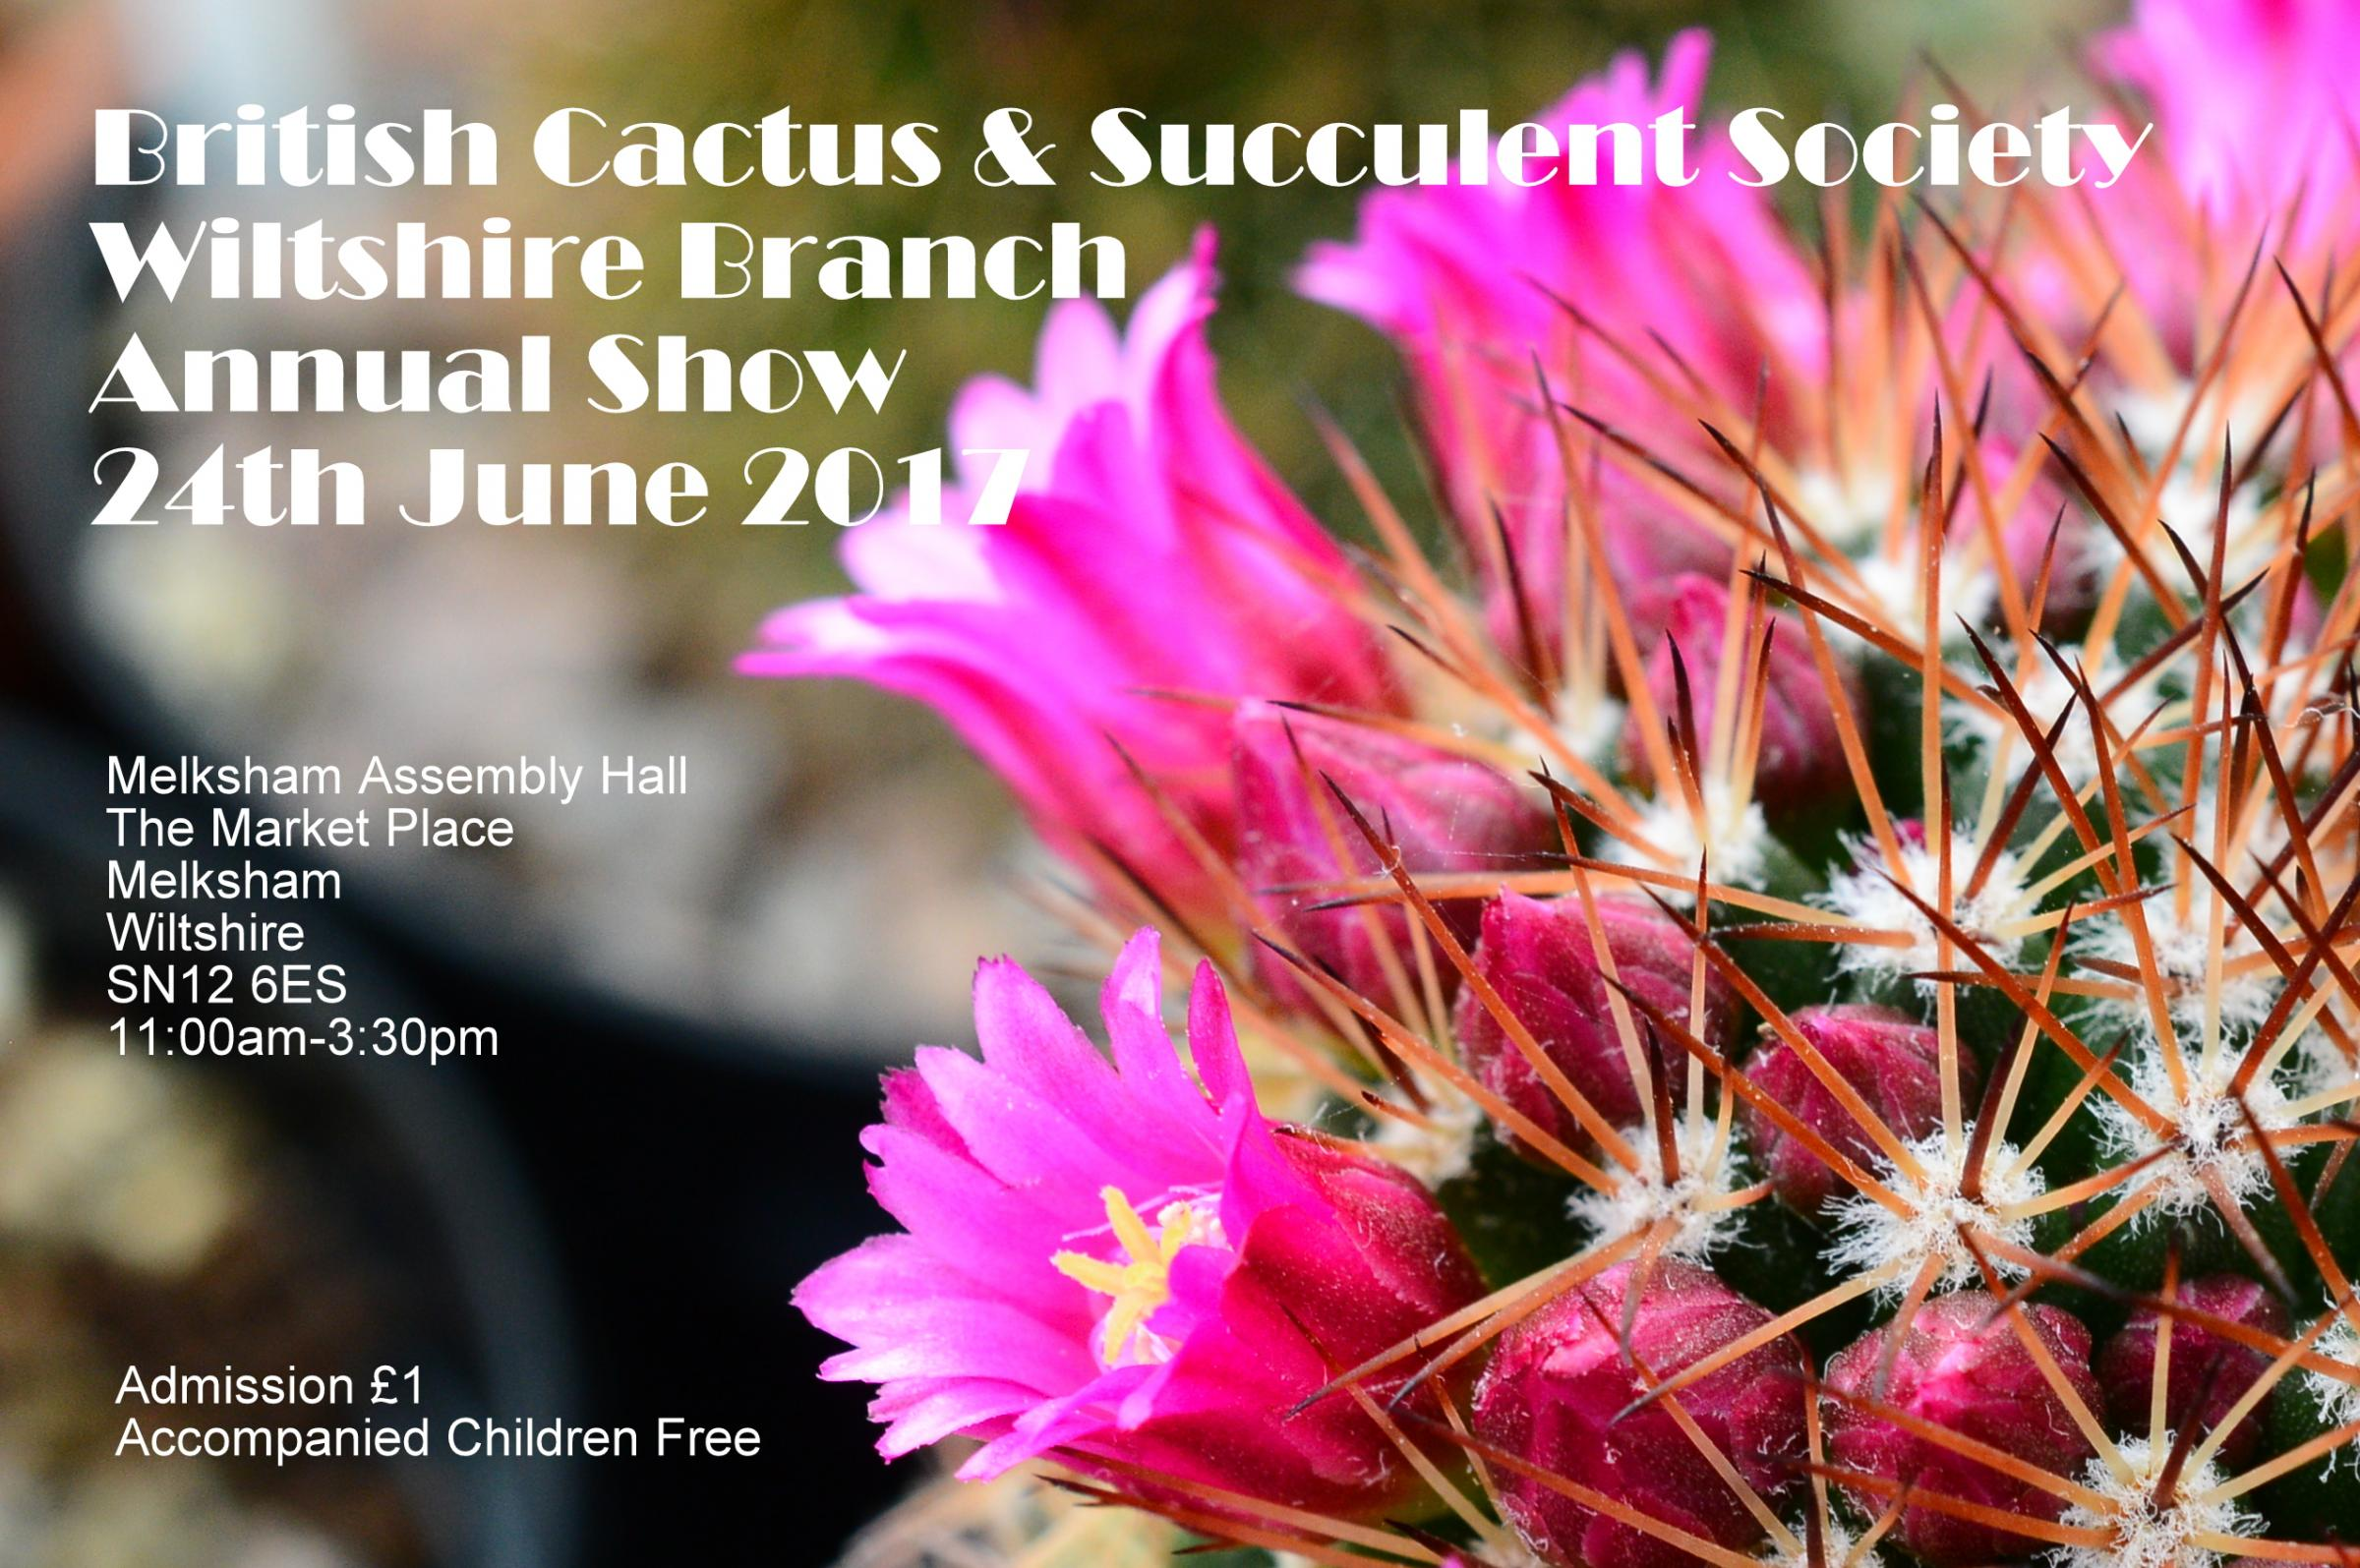 The British Cactus & Succulent Society Wiltshire Branch Annual Show